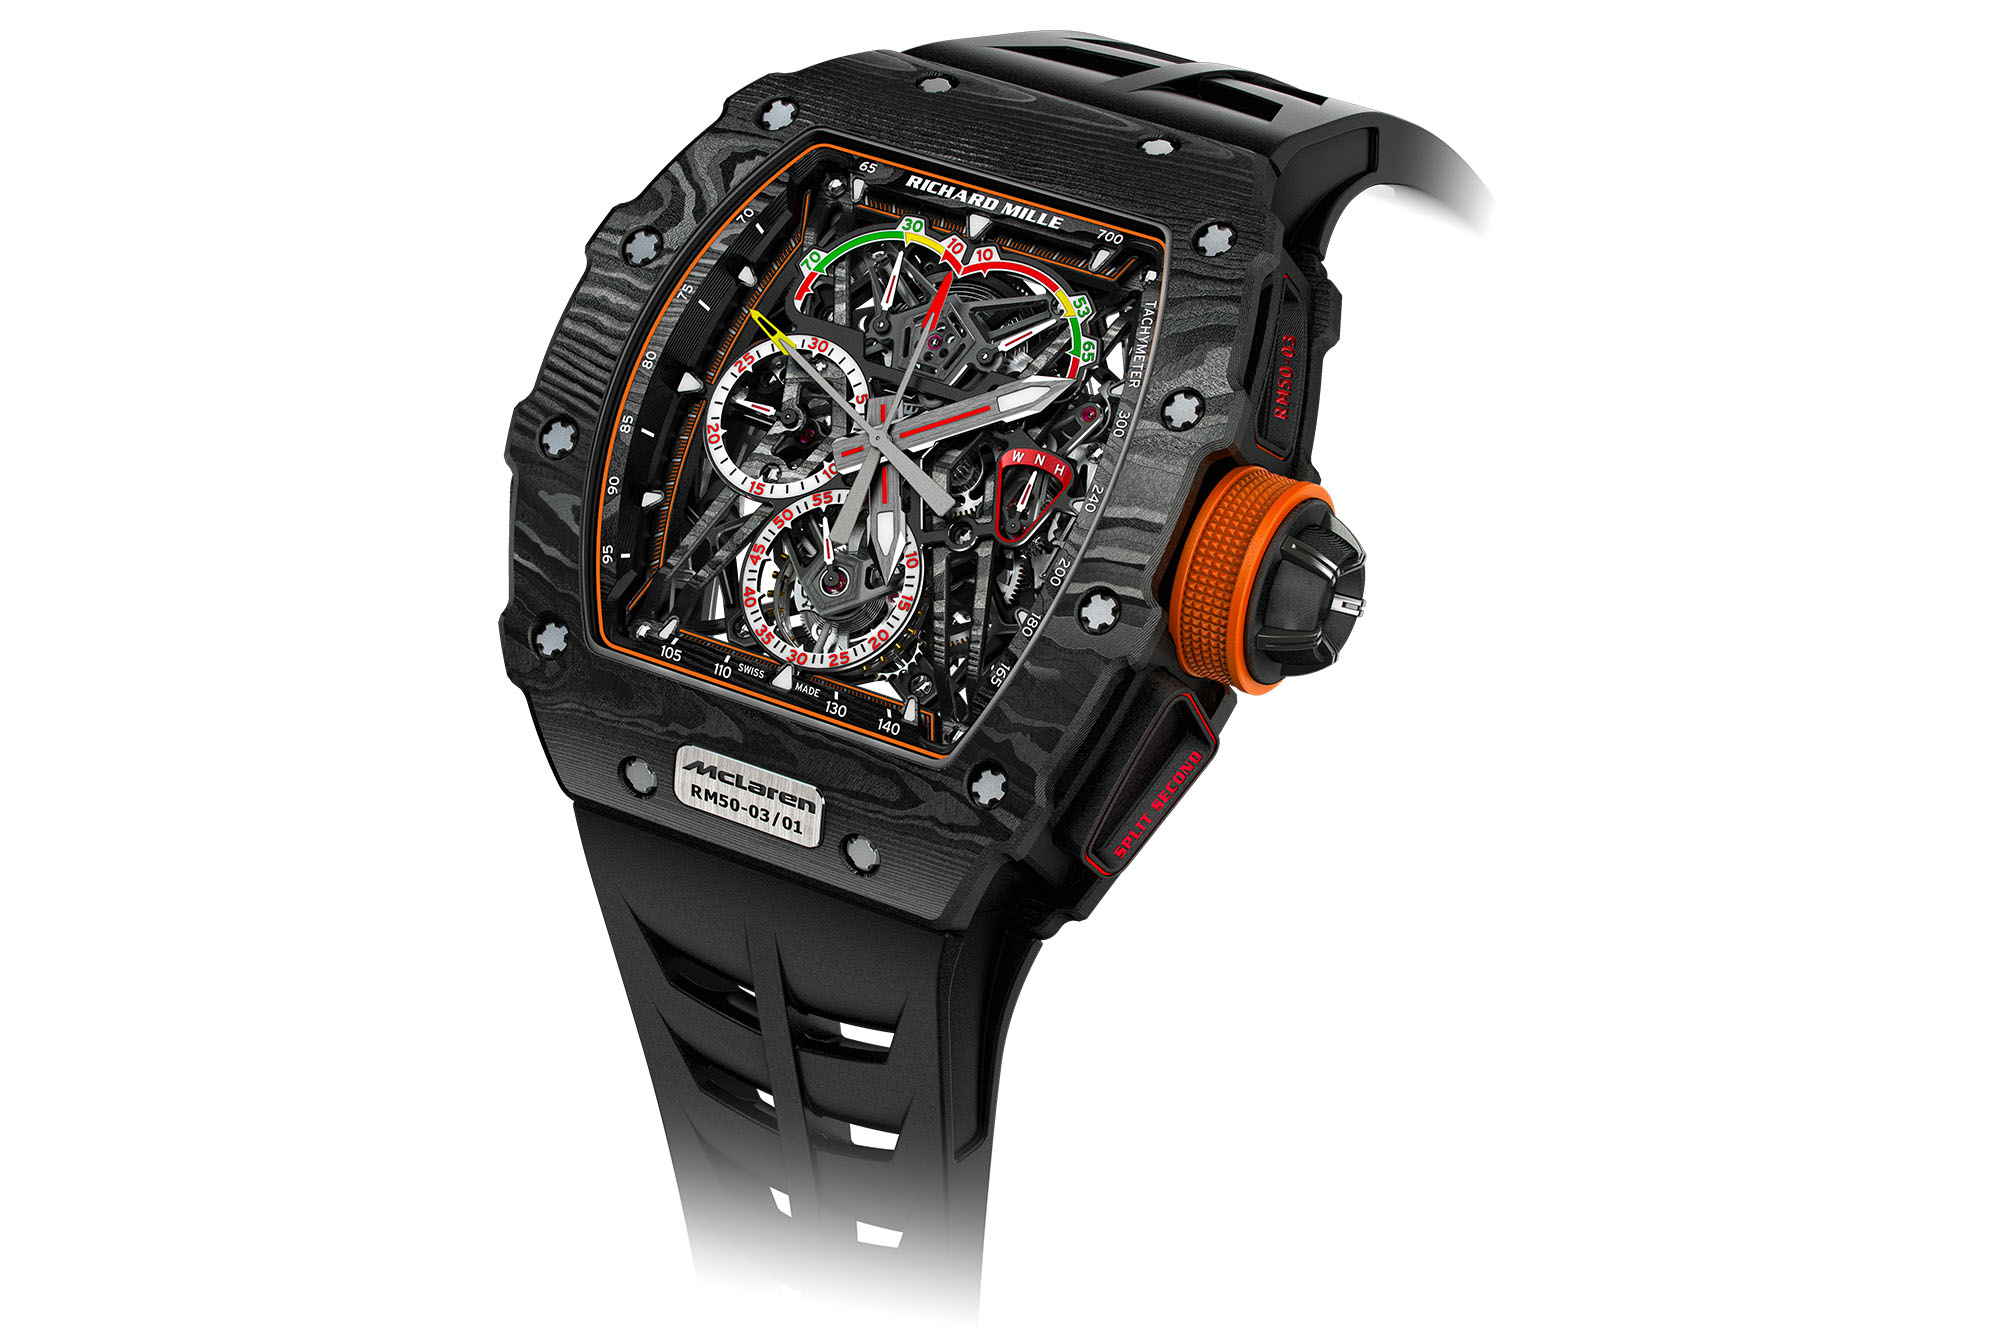 For Thief Of 1 3 Million Richard Mille Watch Options Are Limited Bloomberg